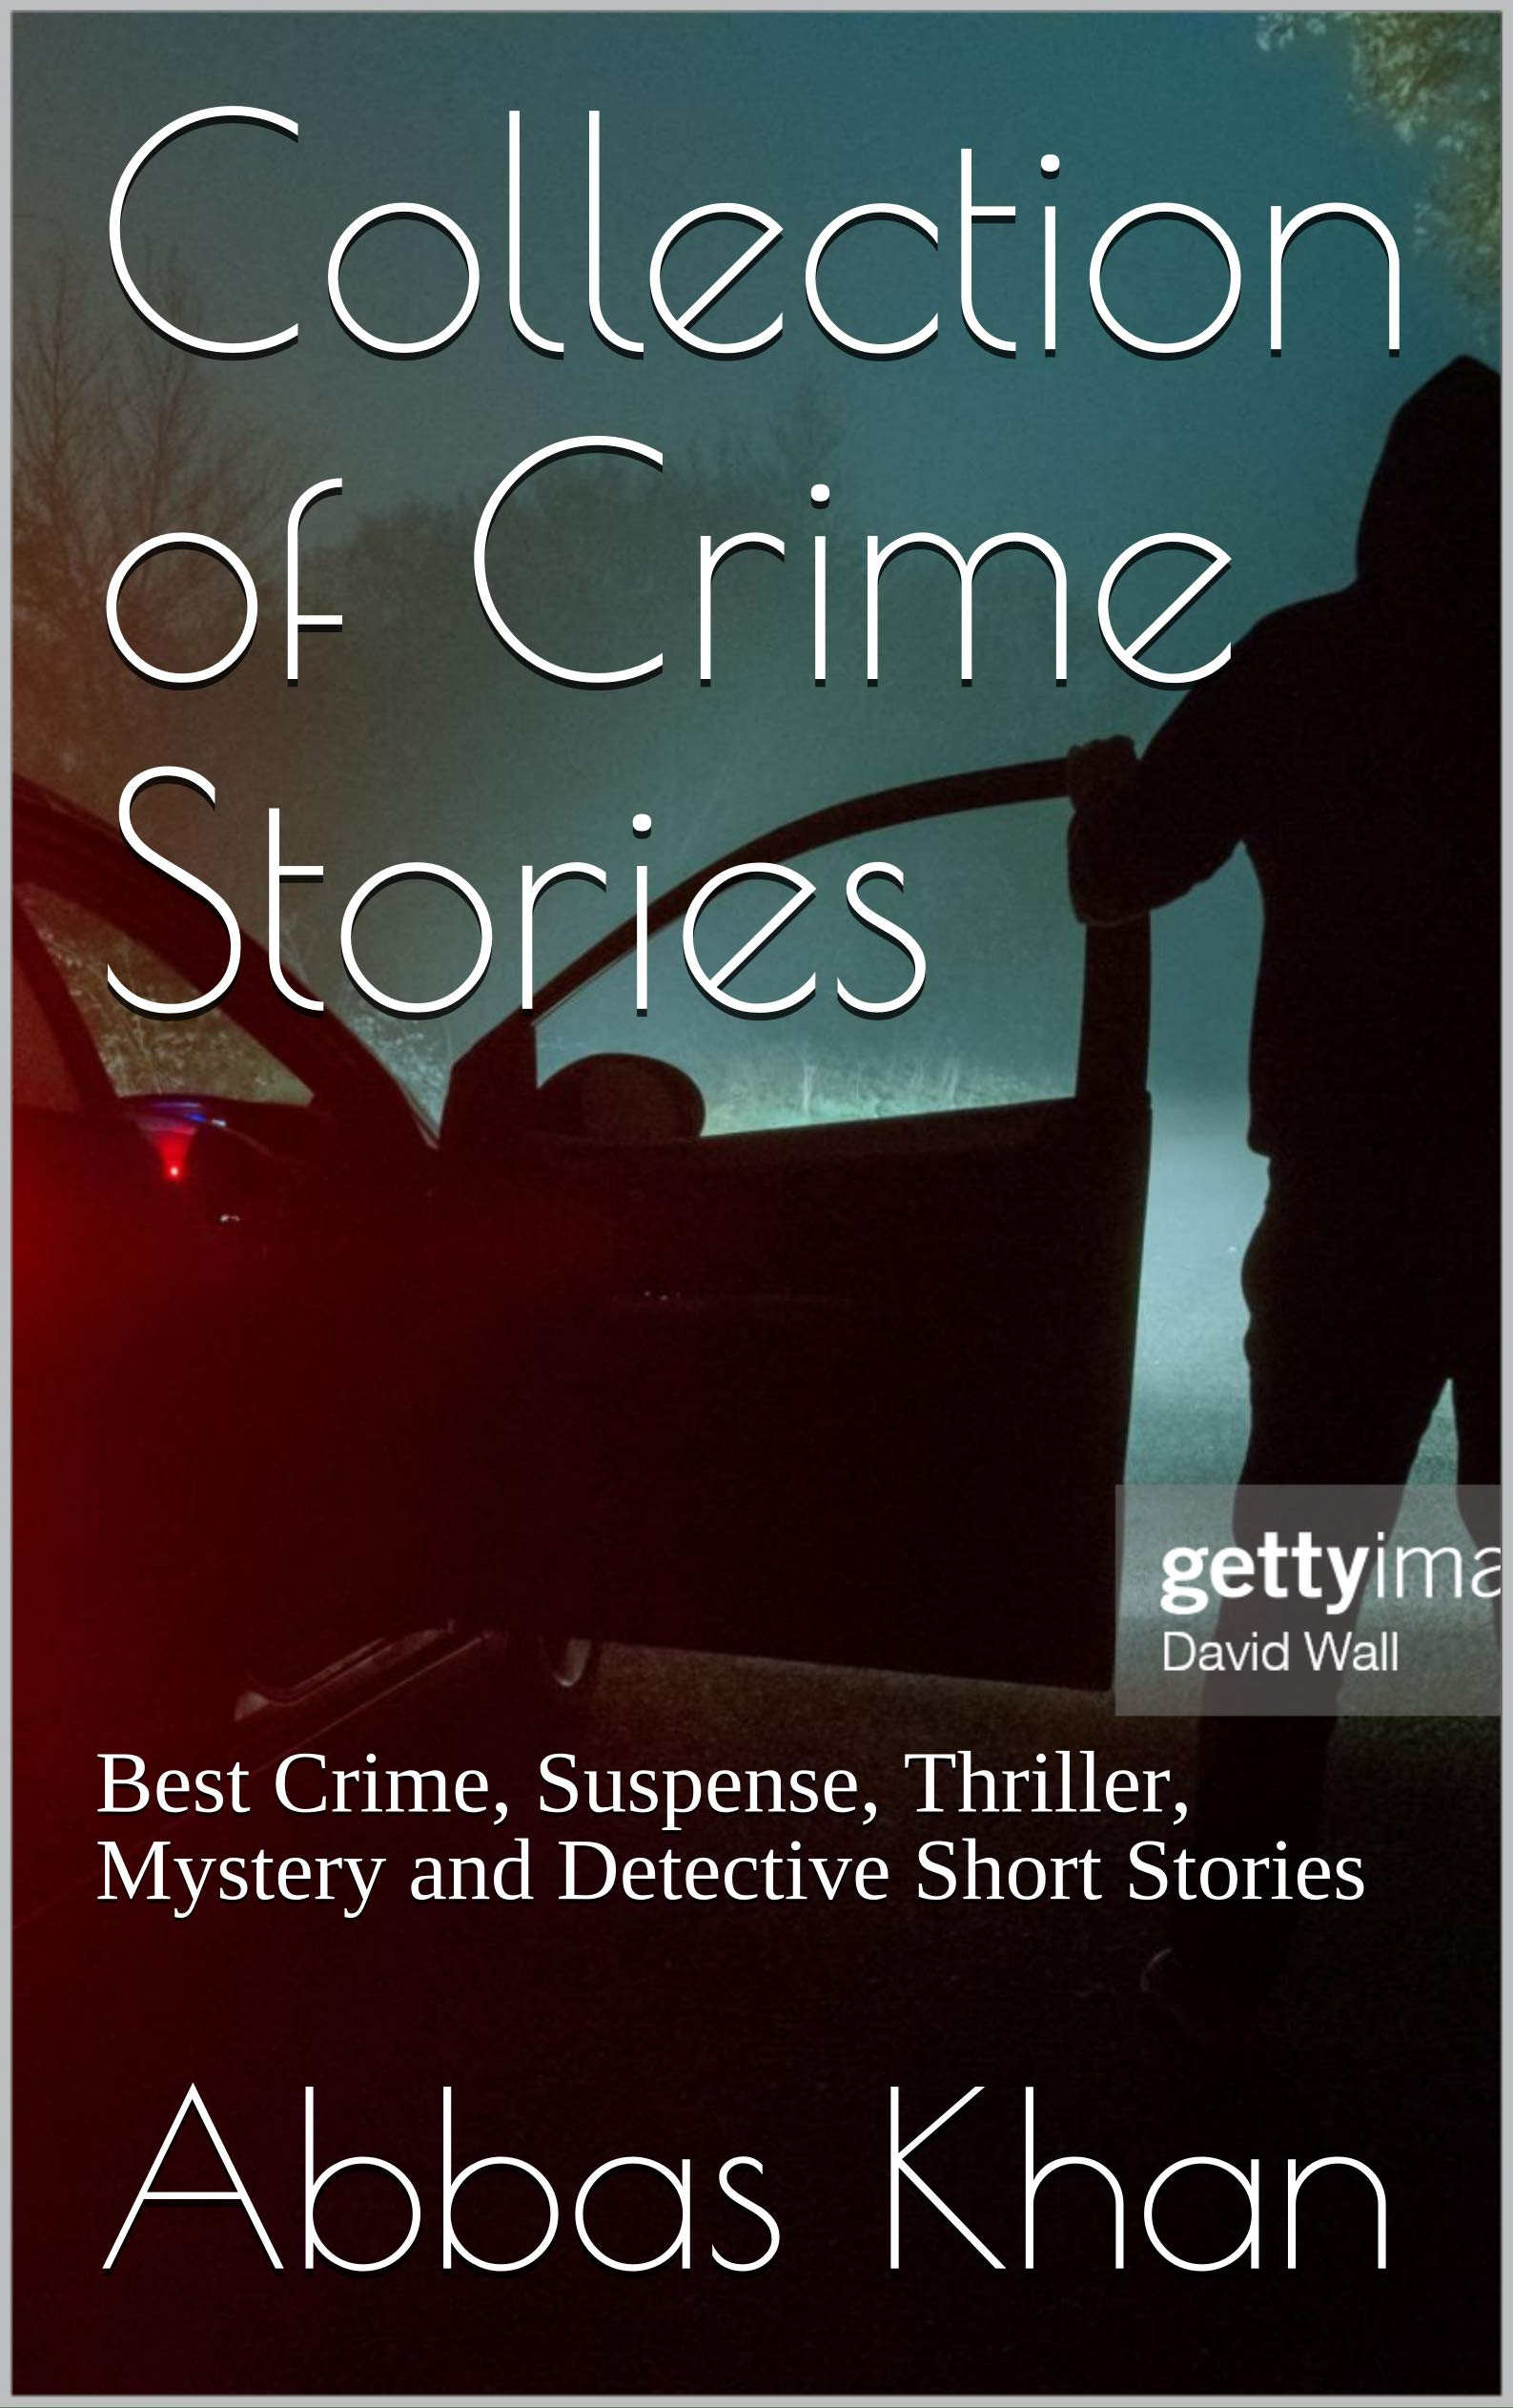 Collection of Crime Stories: Best Crime, Suspense, Thriller, Mystery and Detective Short Stories